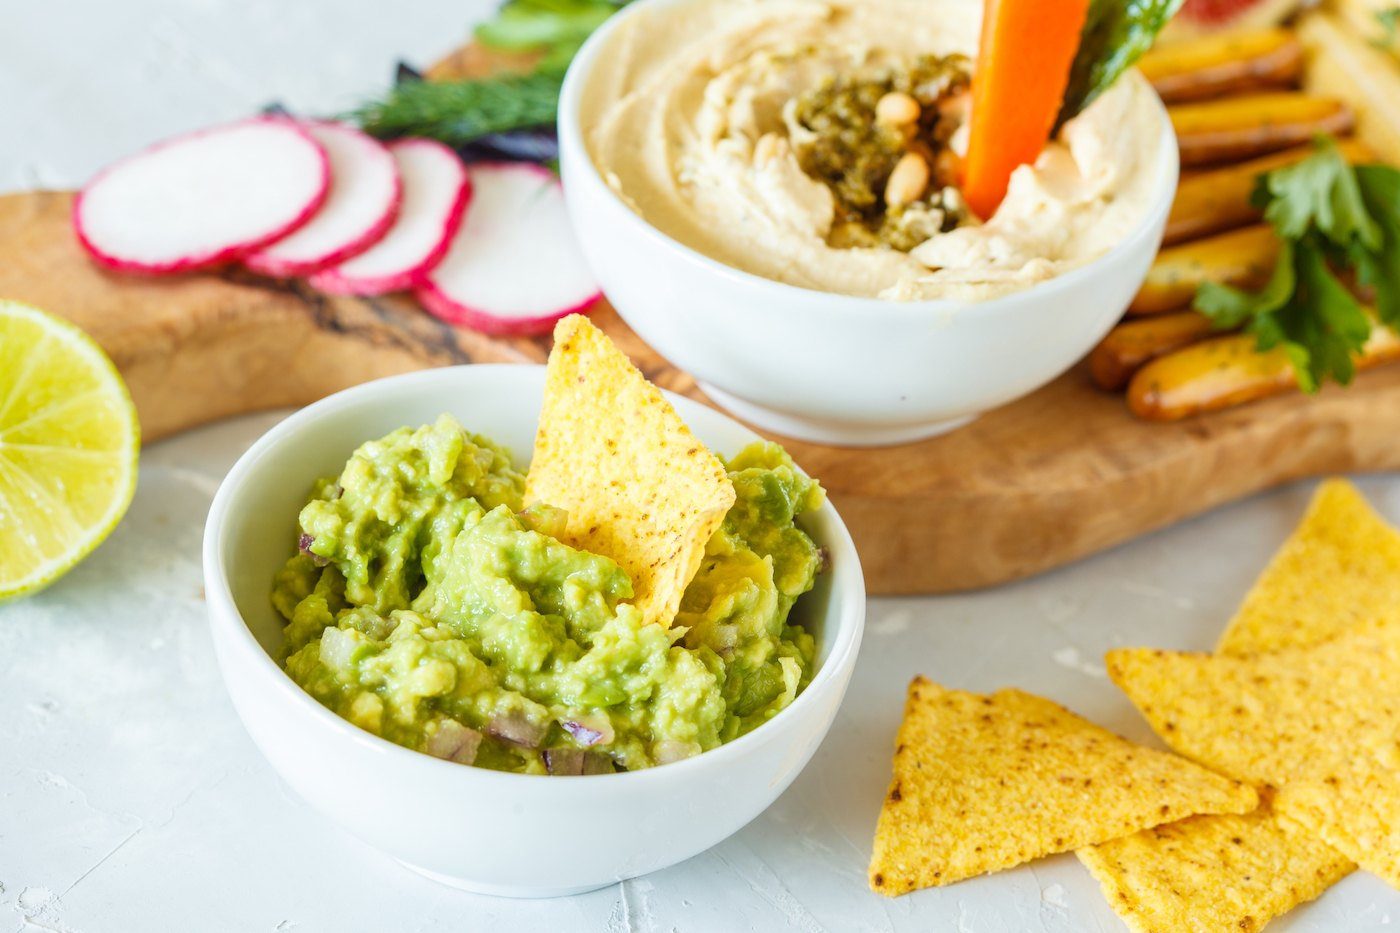 Thumbnail for In a battle between hummus and guac, which healthy snack dip wins?